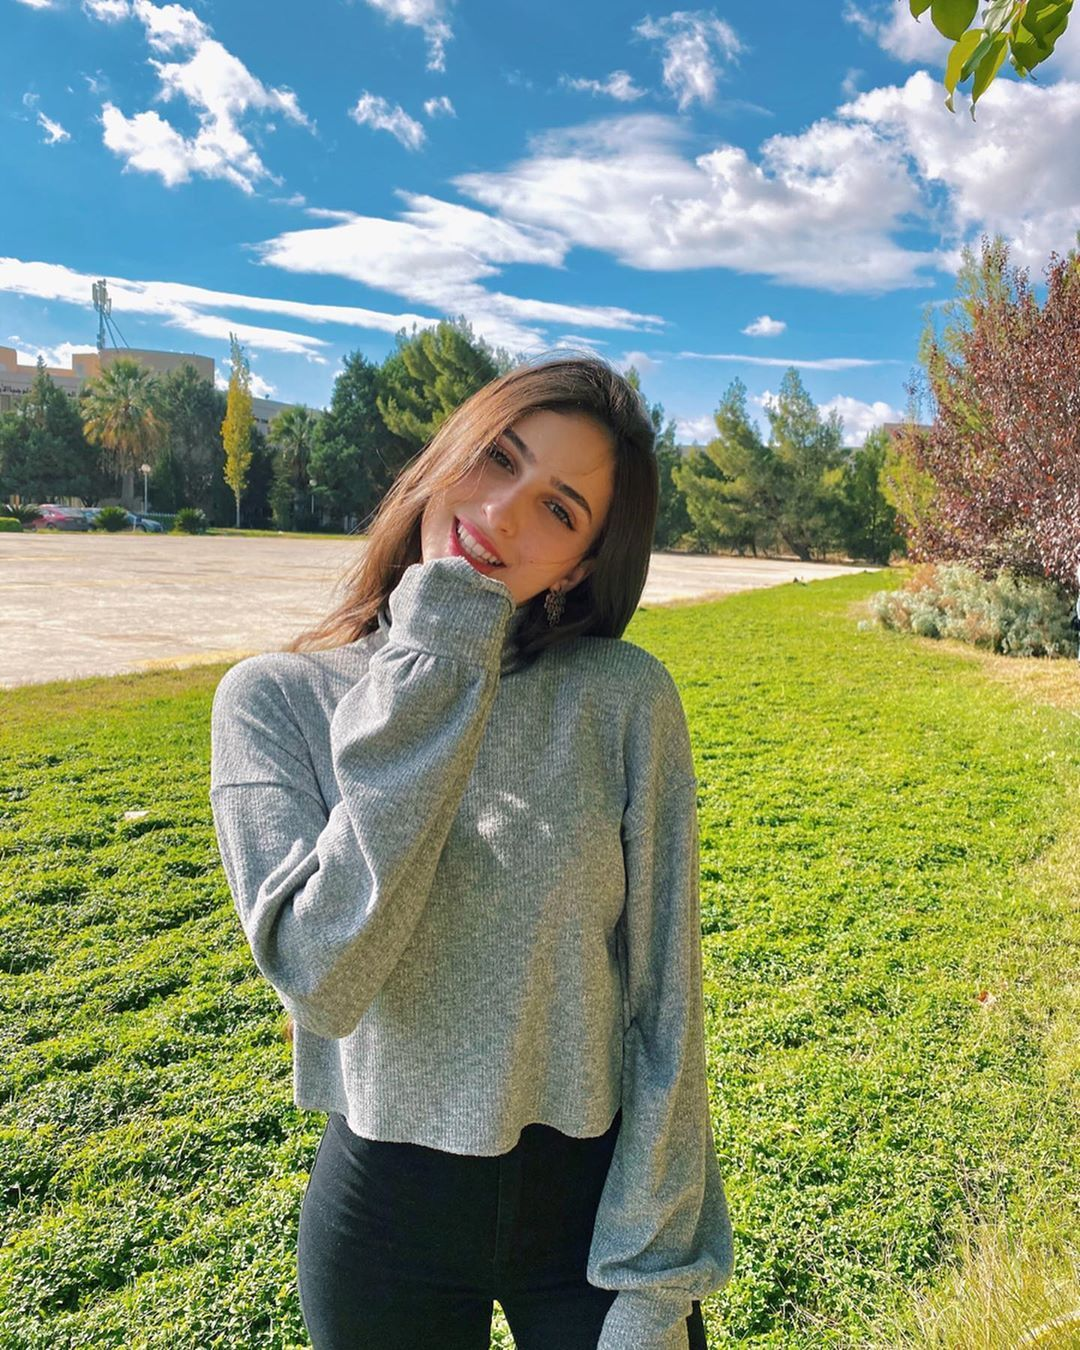 Lifeassara لايف آز سارة On Instagram خ خ خ خميس Fashion Sweaters Pullover